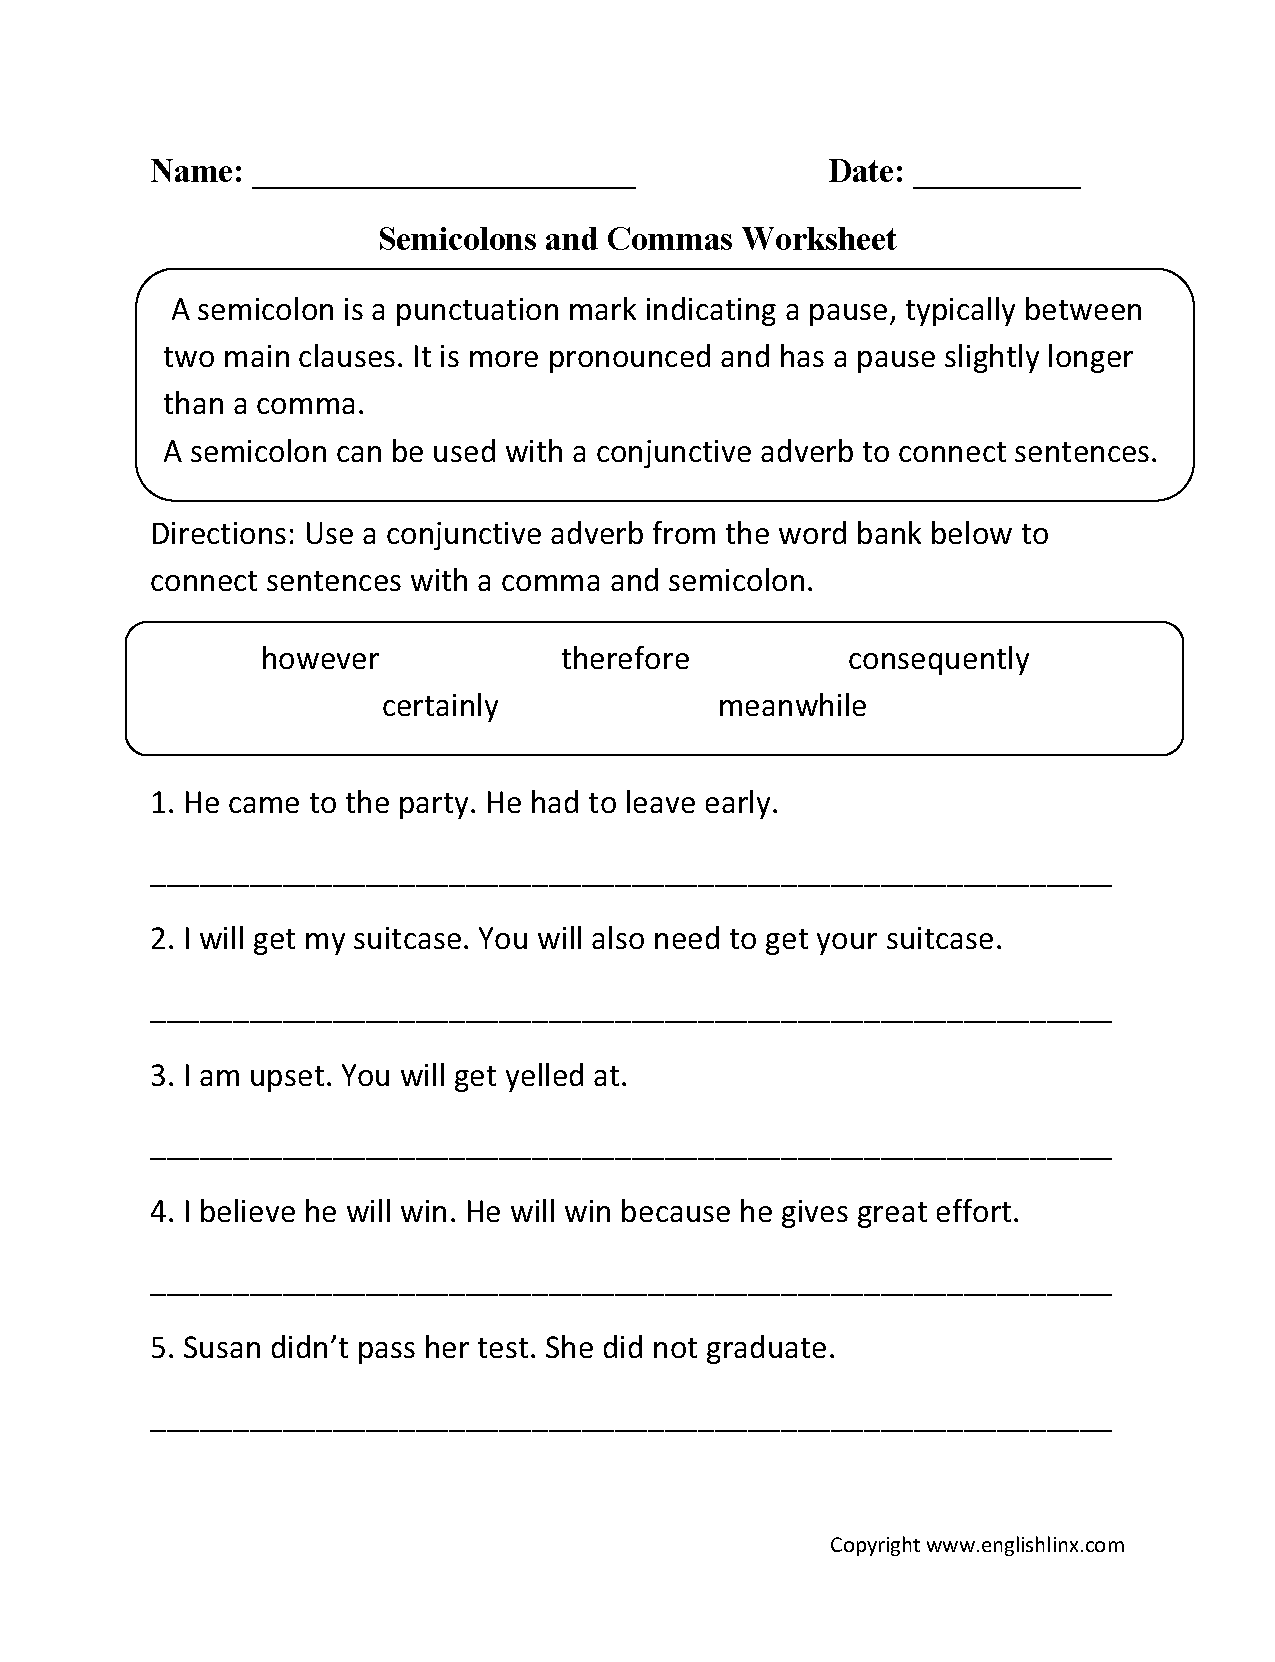 Worksheets Colon Worksheet grammar worksheets punctuation semicolon worksheets